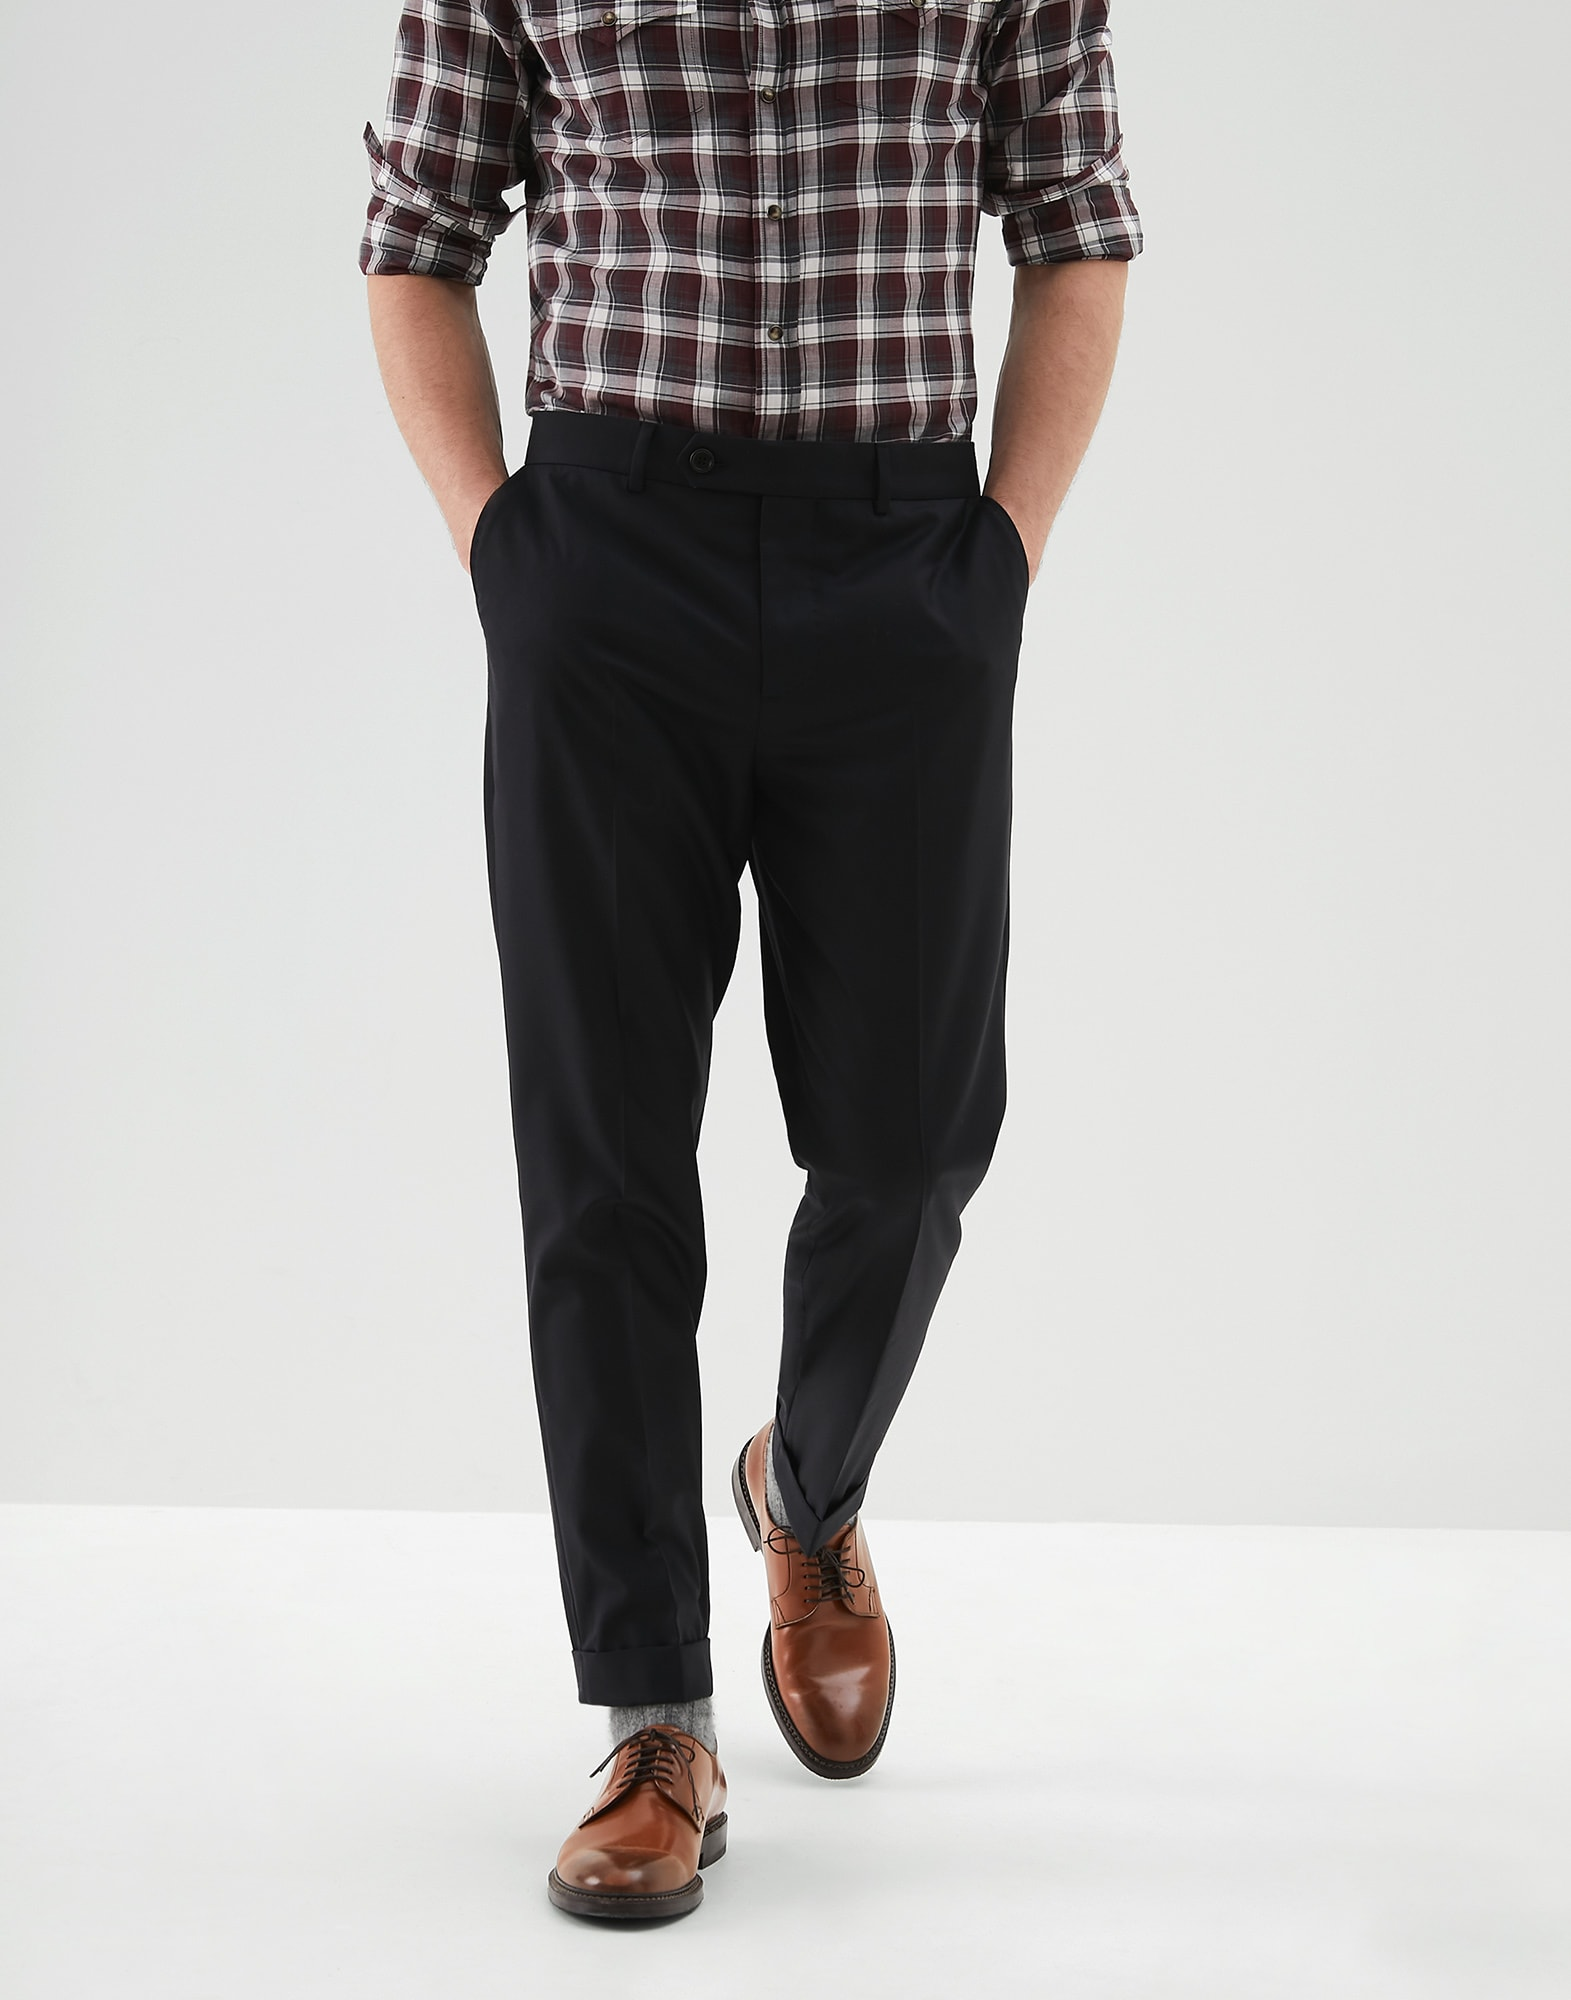 Trousers Black Man 0 - Brunello Cucinelli